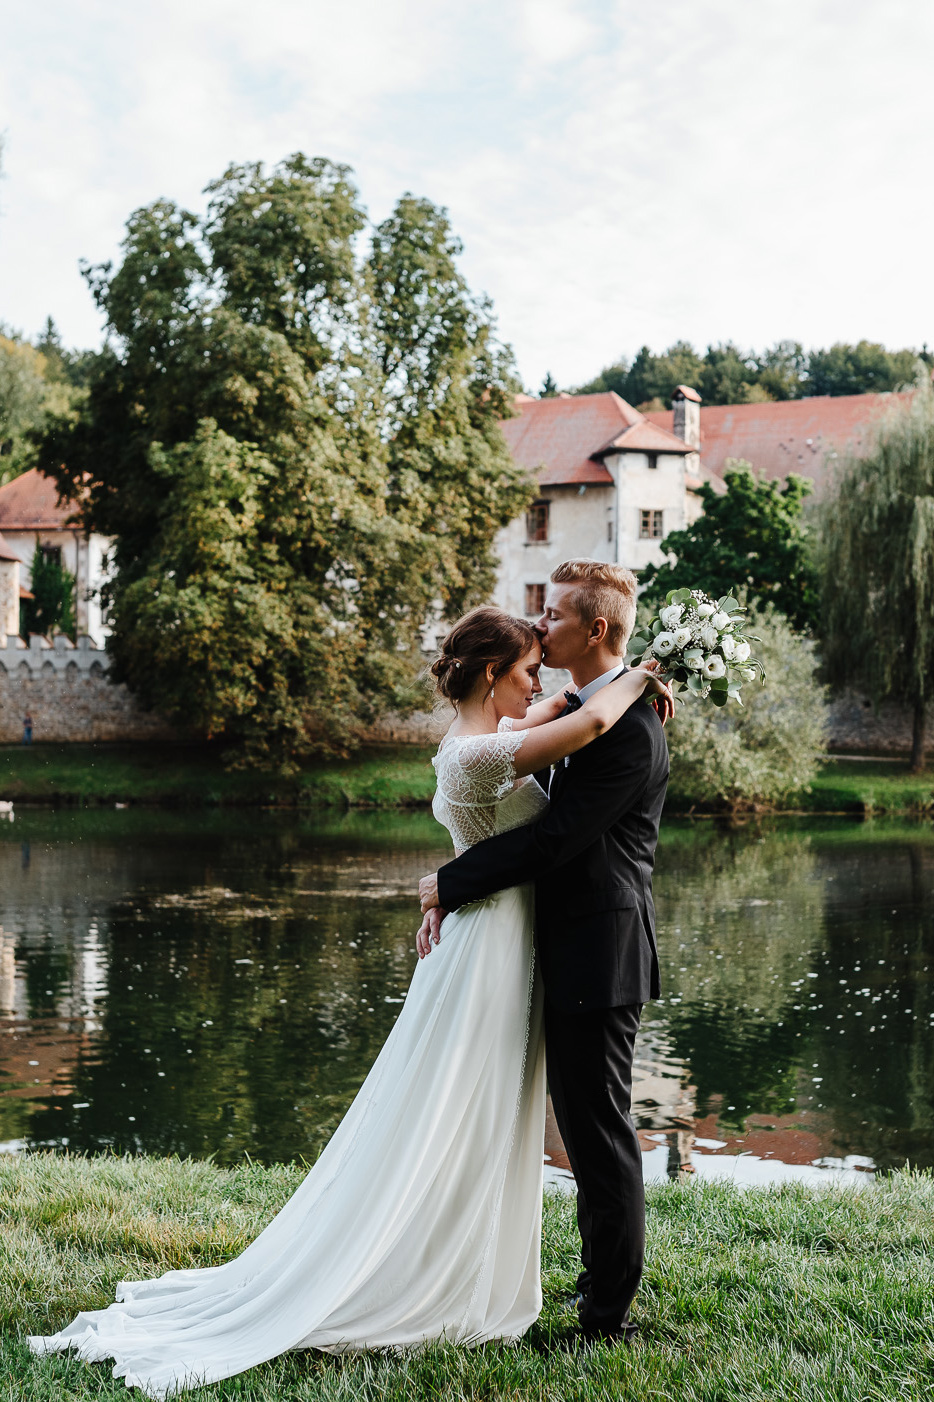 Grad Otočec Wedding